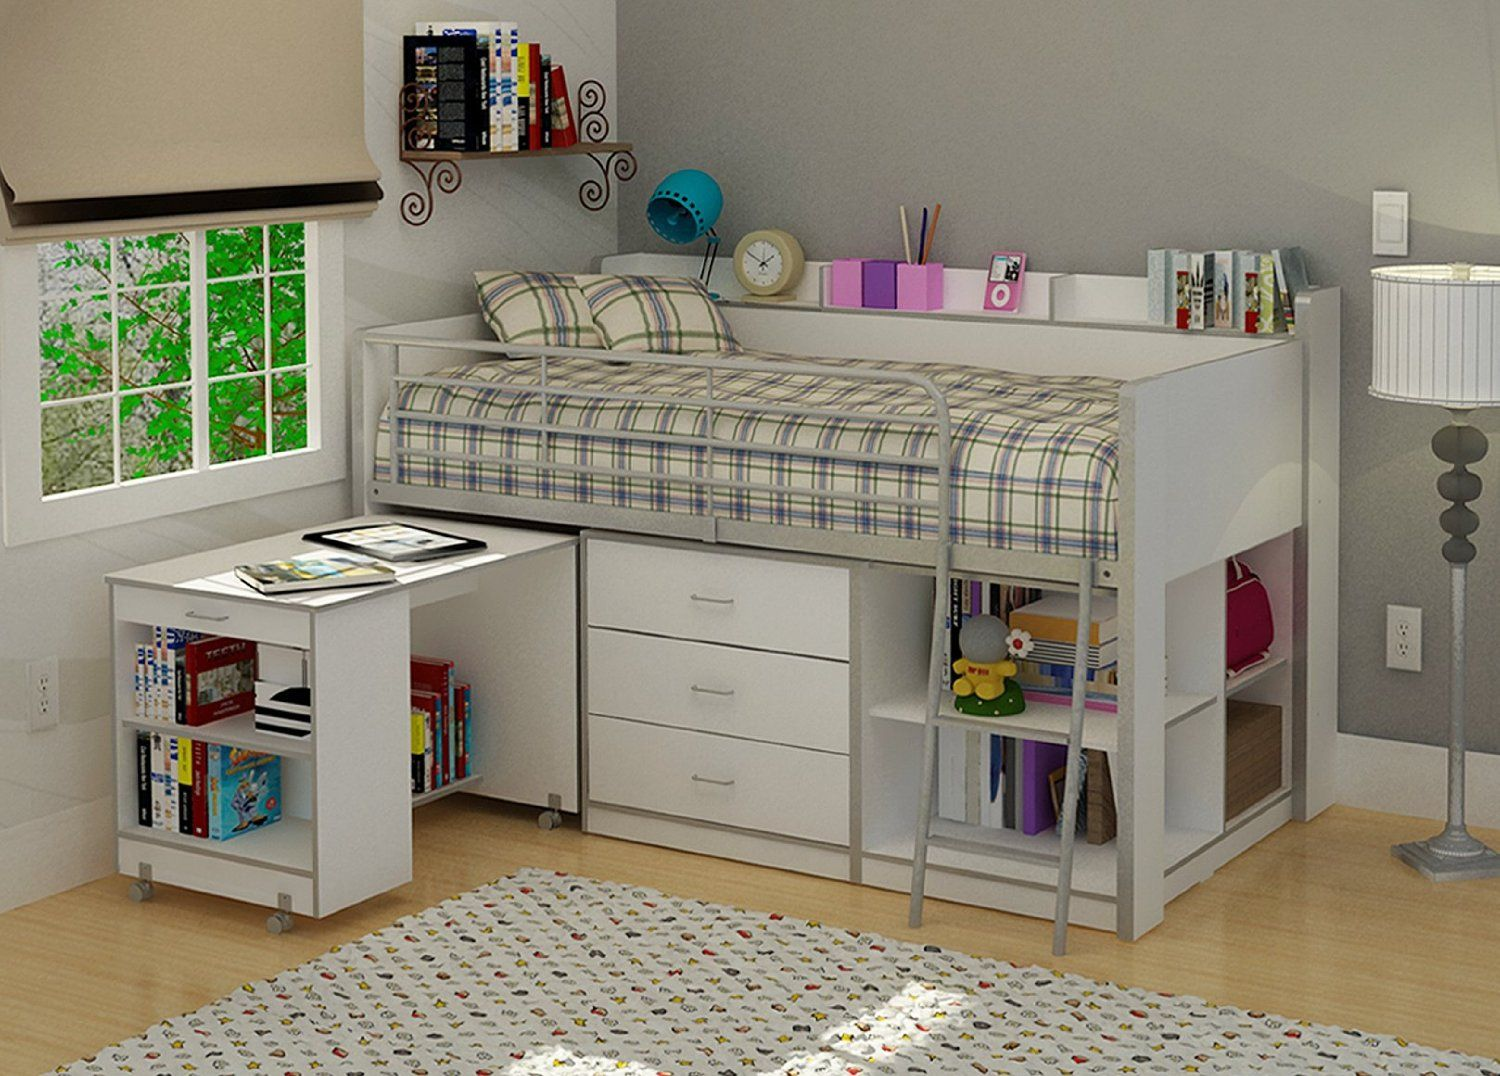 then canada rc bed kids desk storage bunk metal and regaling also wood with girls for set soothing chic beds full headboards size loft